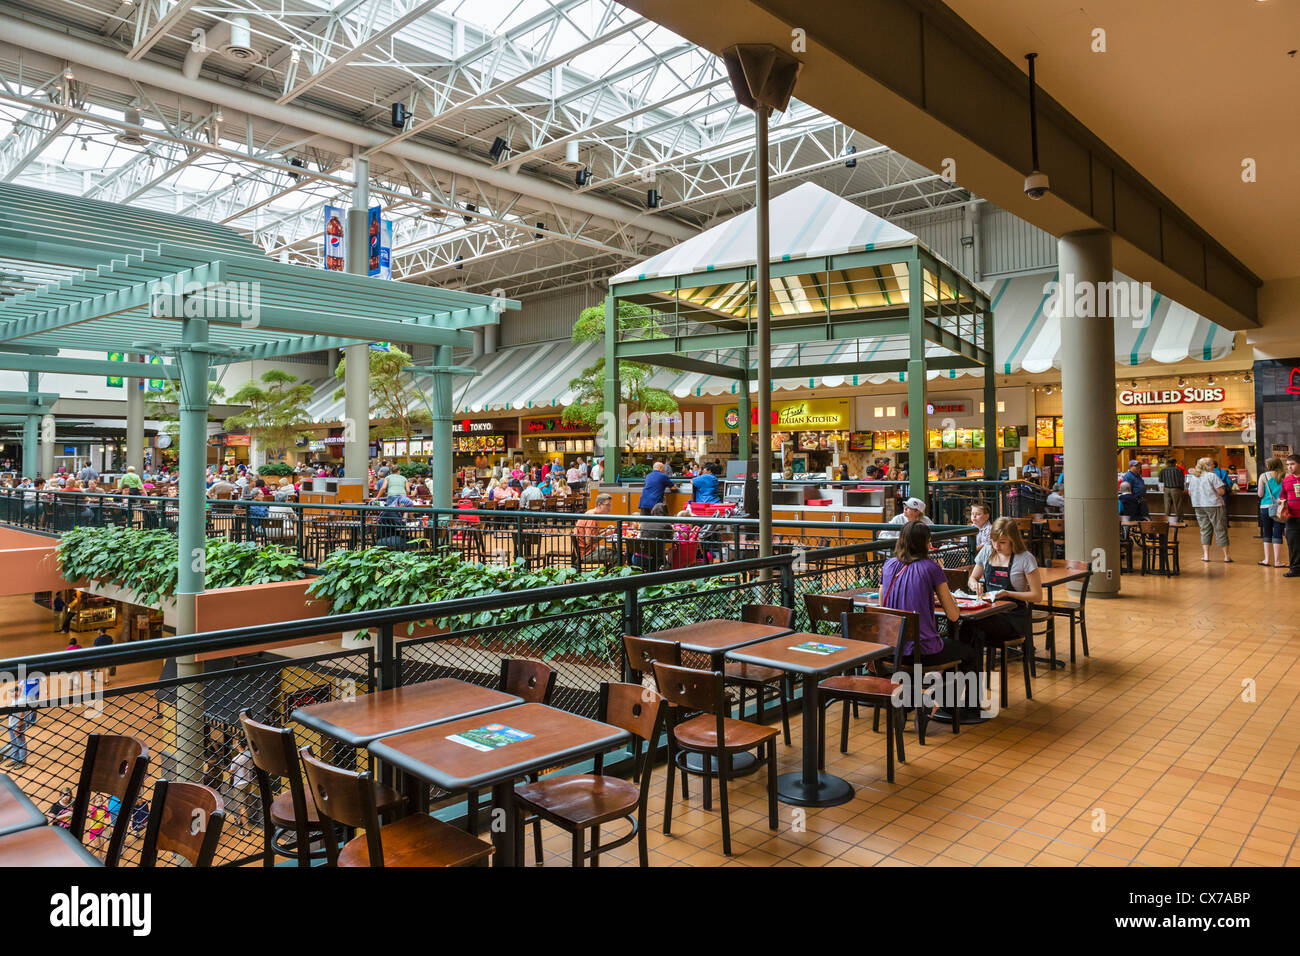 Moa Food Court